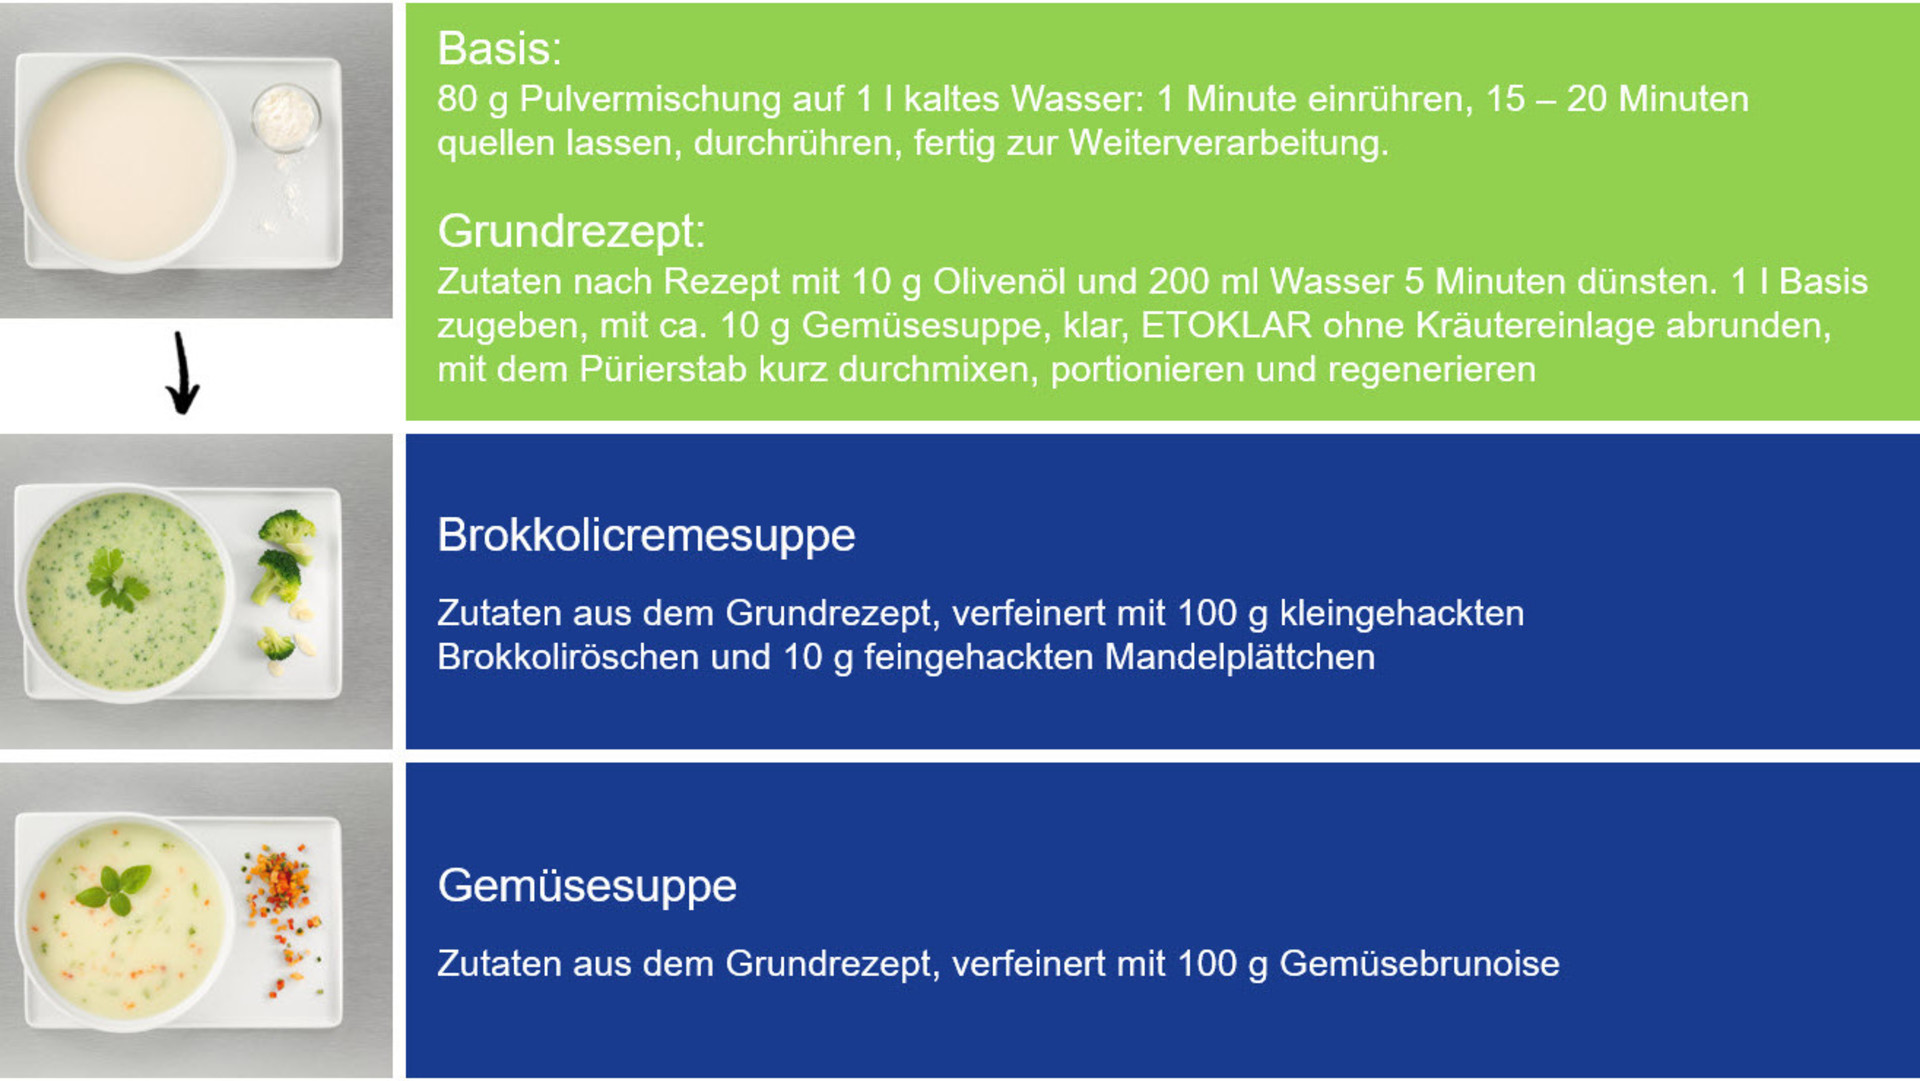 Grafik Abwandlung Basis Suppe von Dr. Oetker Professional